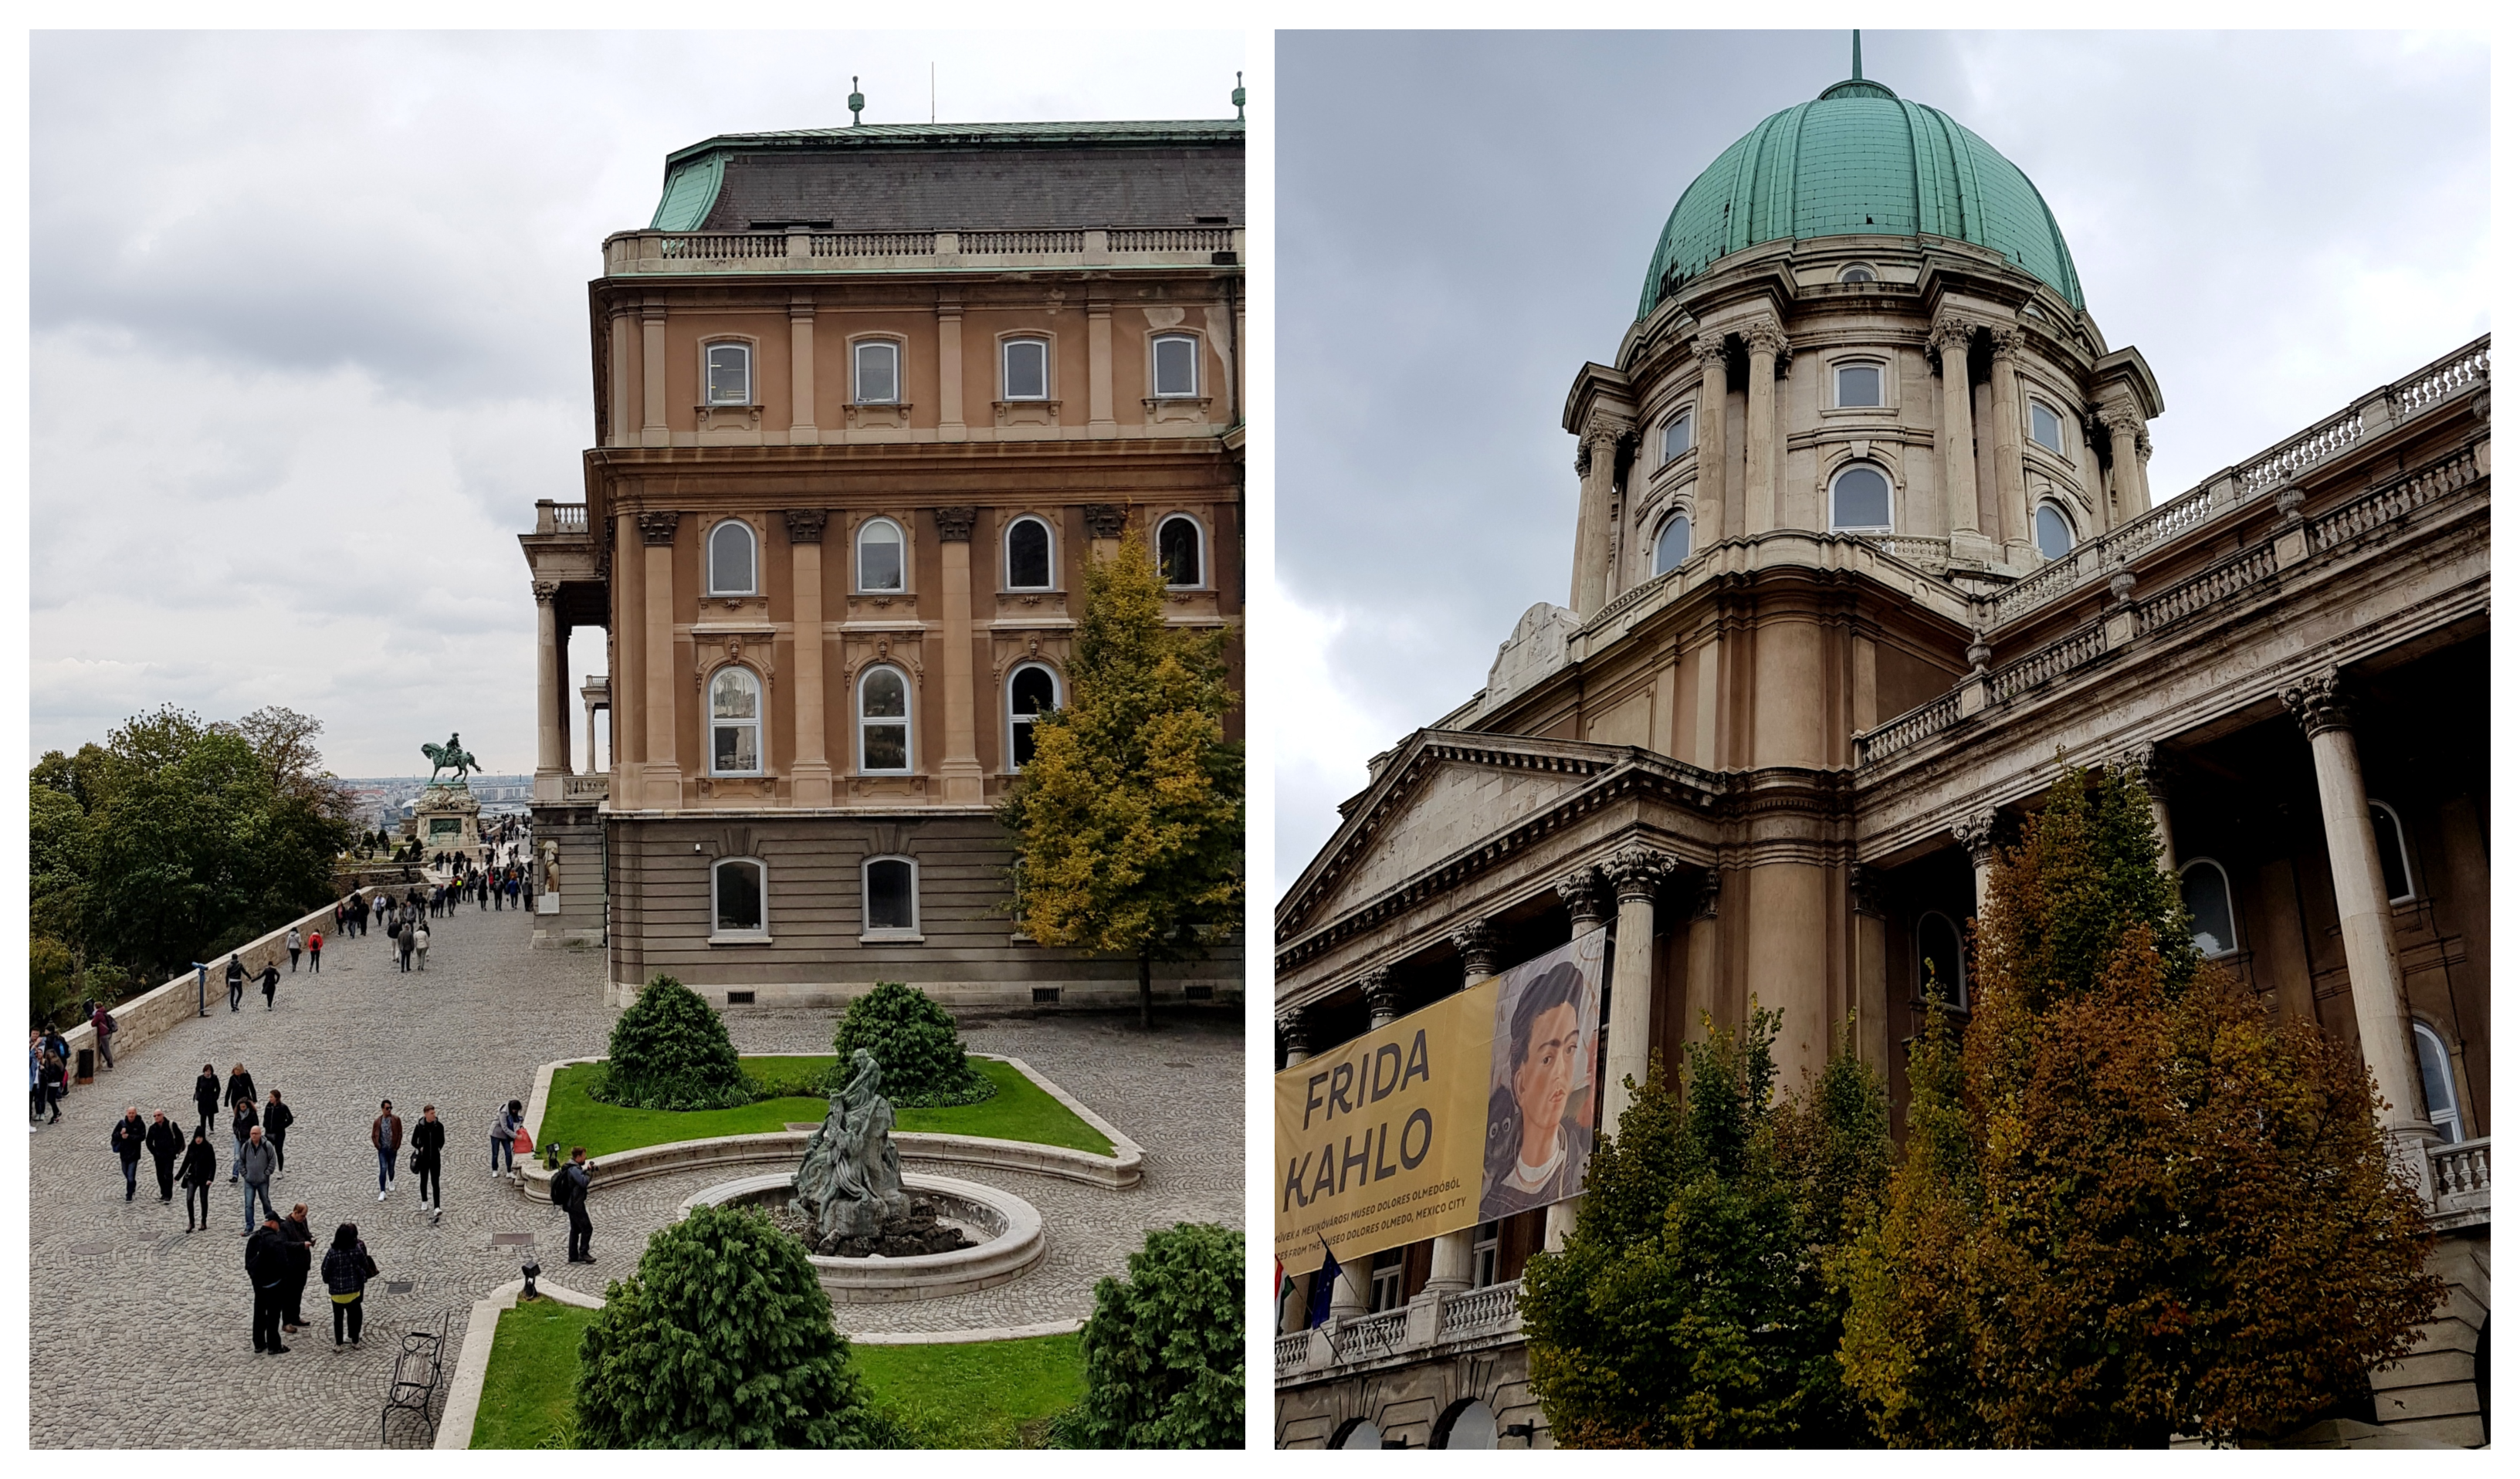 budapest-chateau-musée-galerie